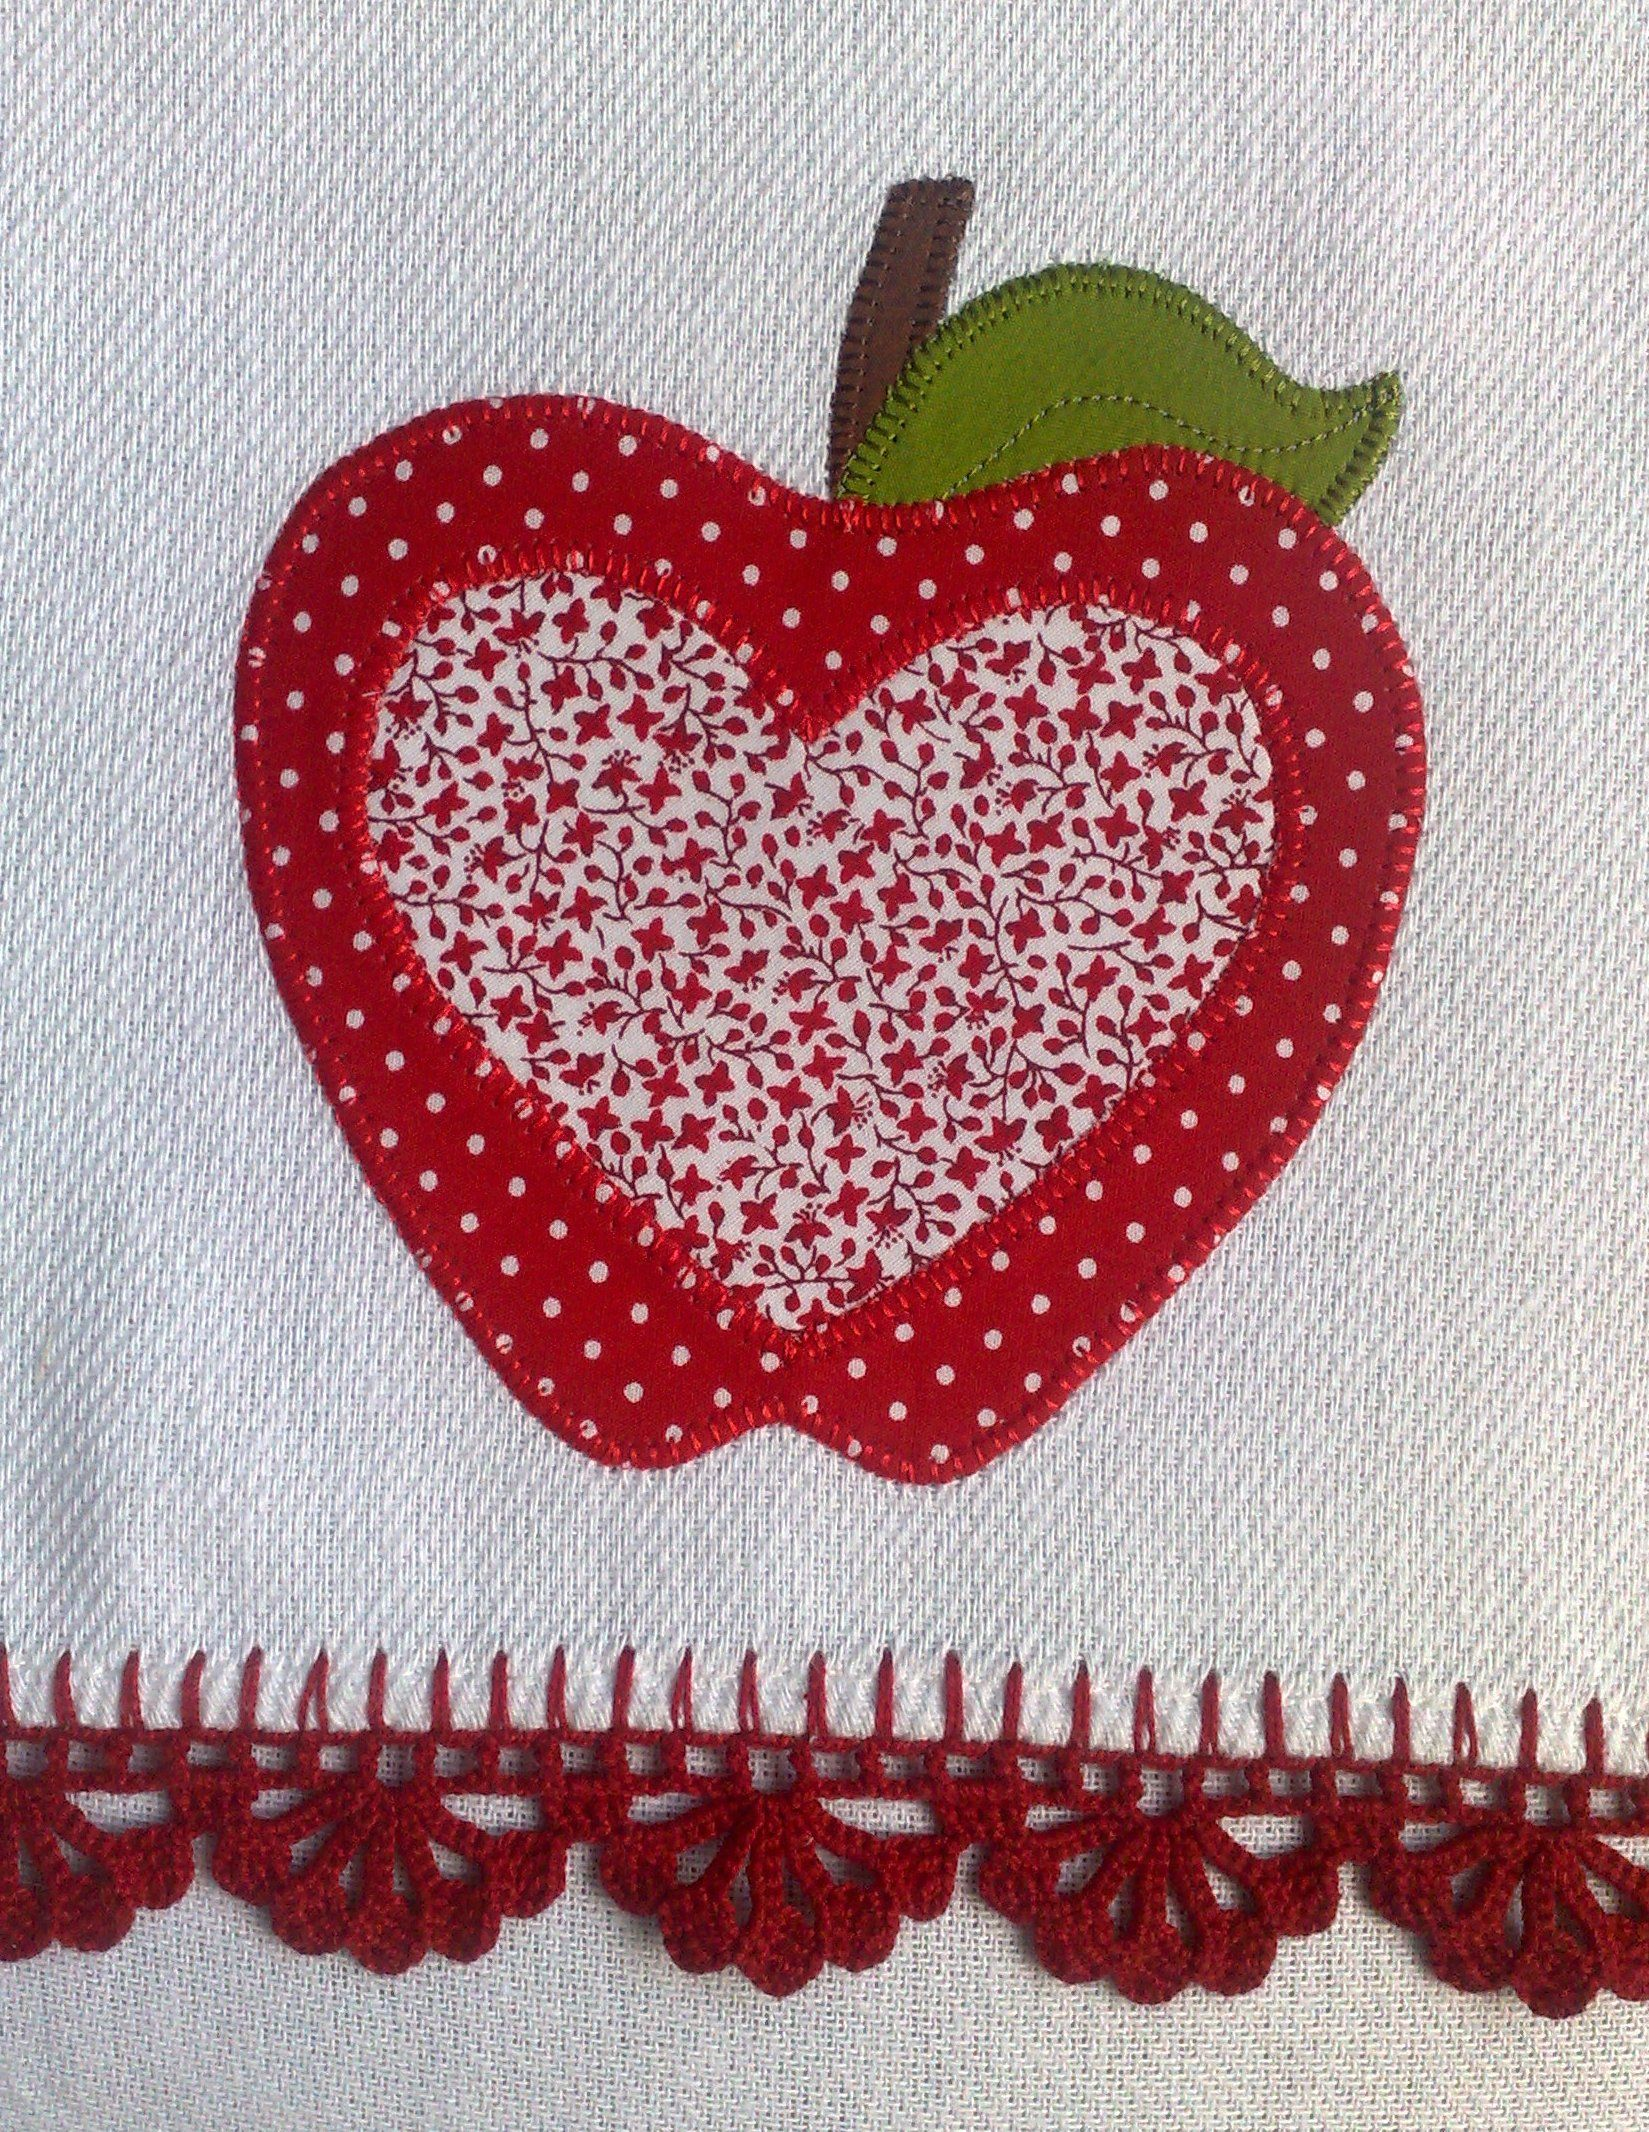 Disregard the quilt applique--take a look at the crocheted edge ...